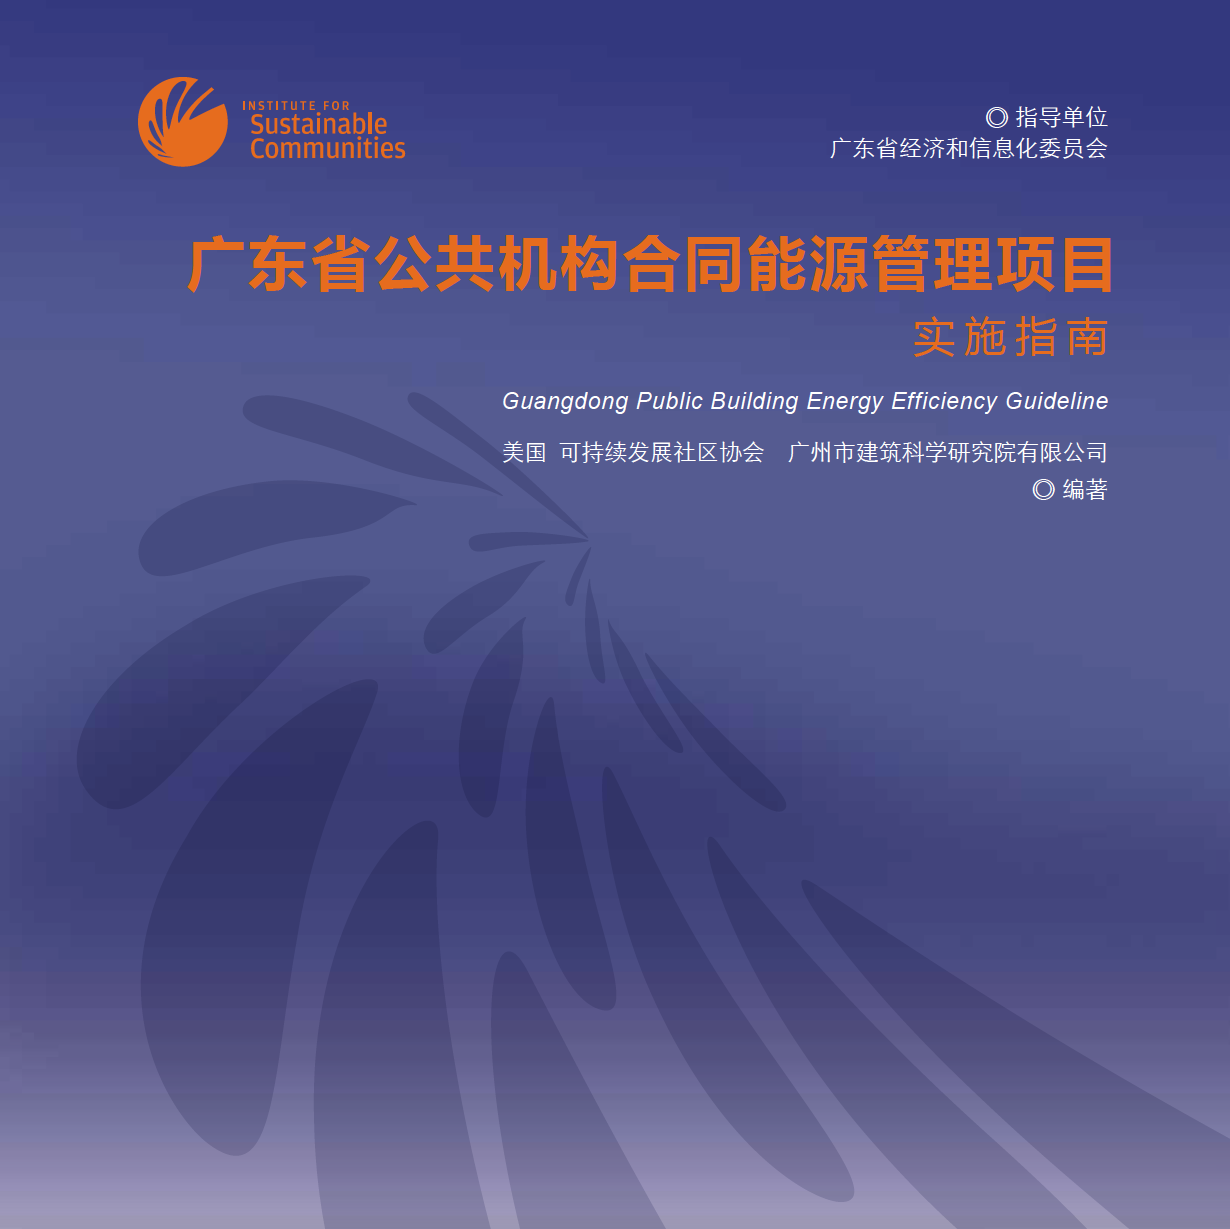 Guangdong public building energy efficiency guideline